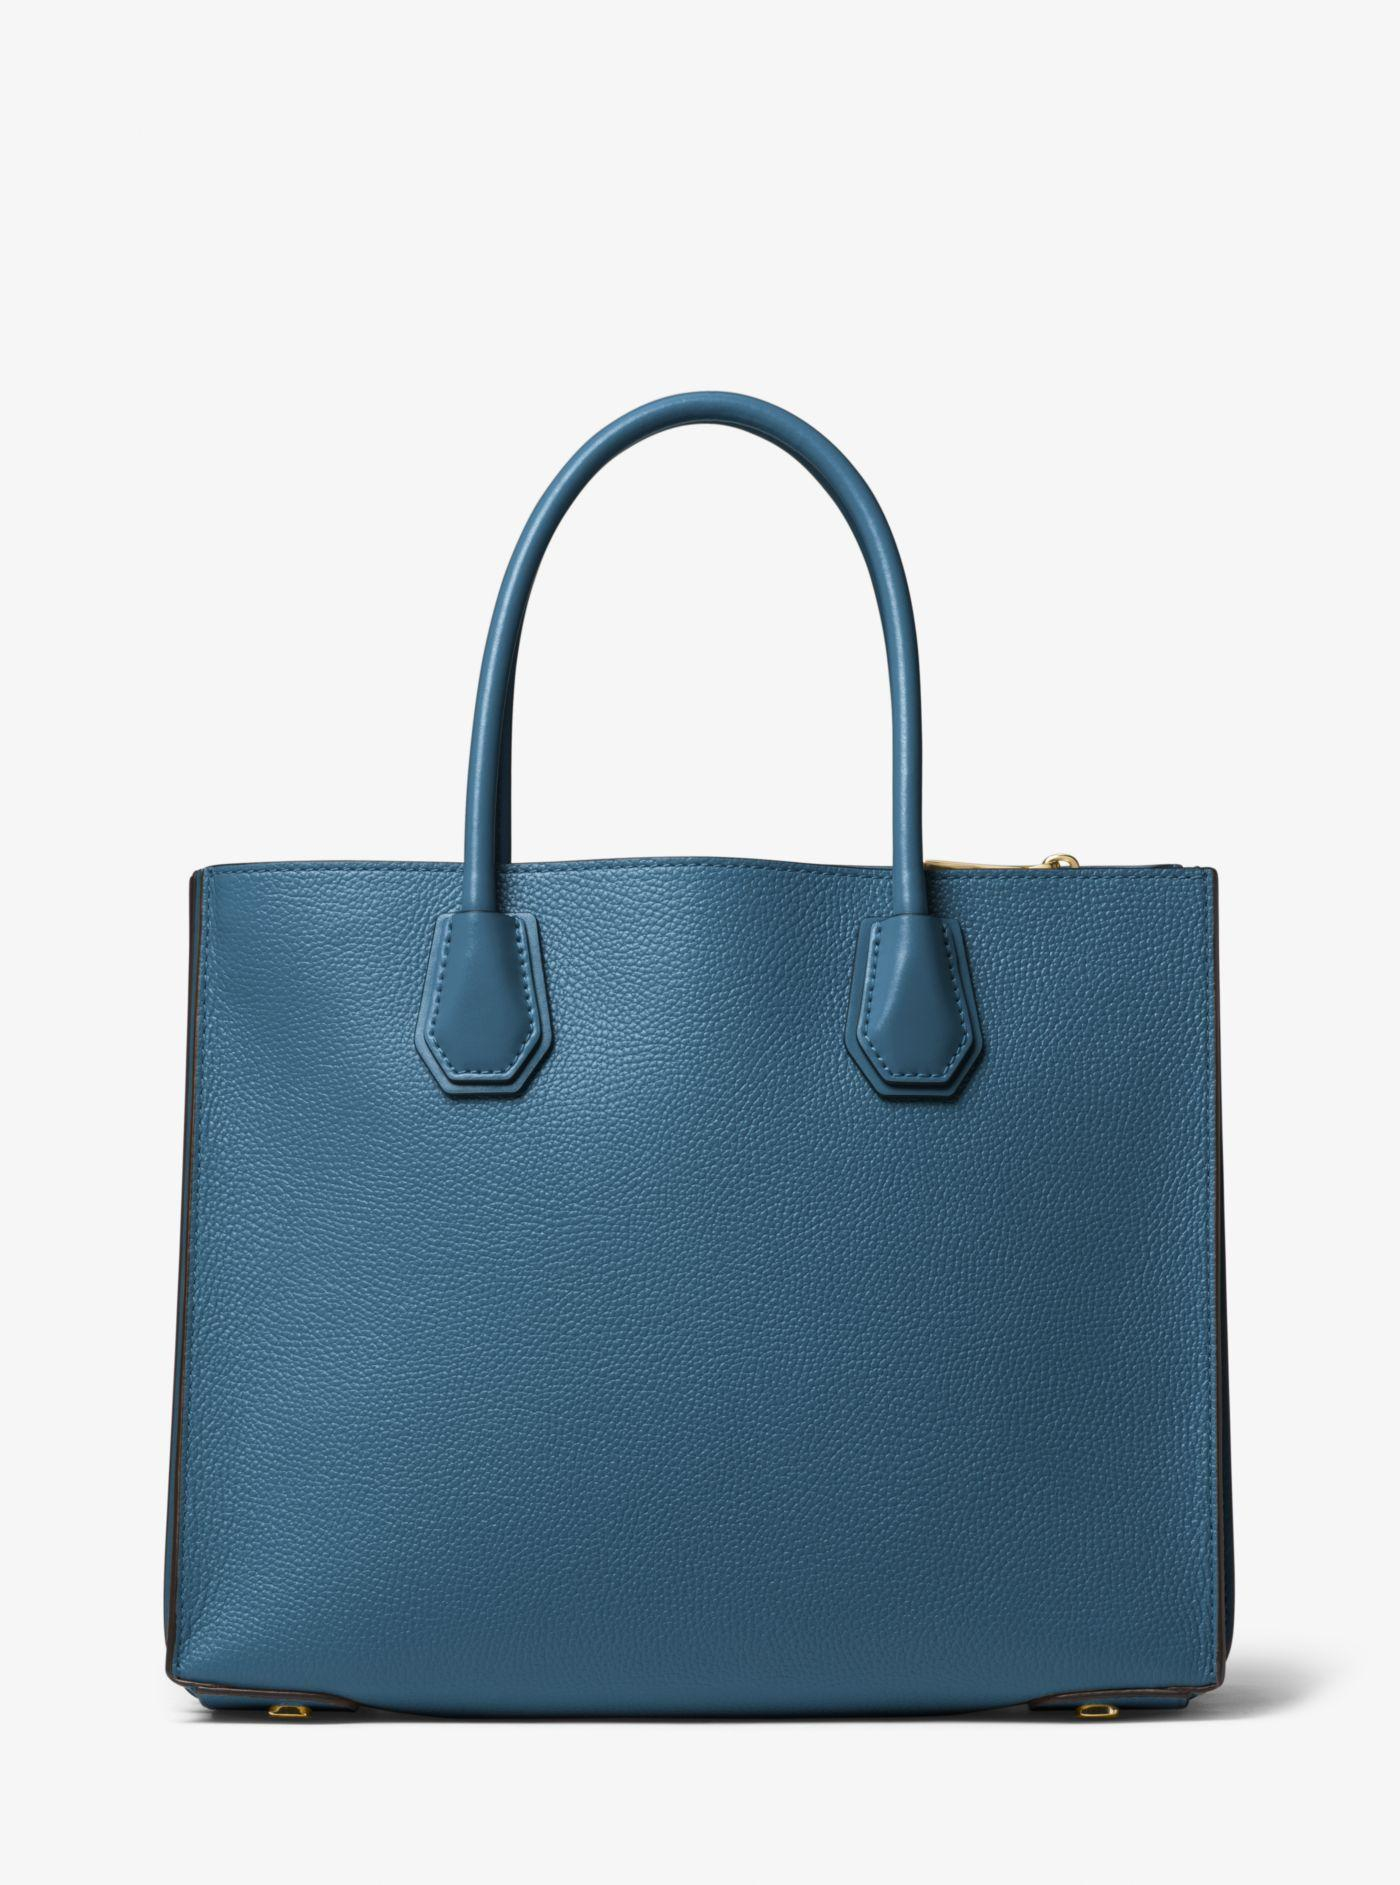 c22f1aa62 Michael Kors Mercer Large Pebbled Leather Accordion Tote in Blue - Lyst